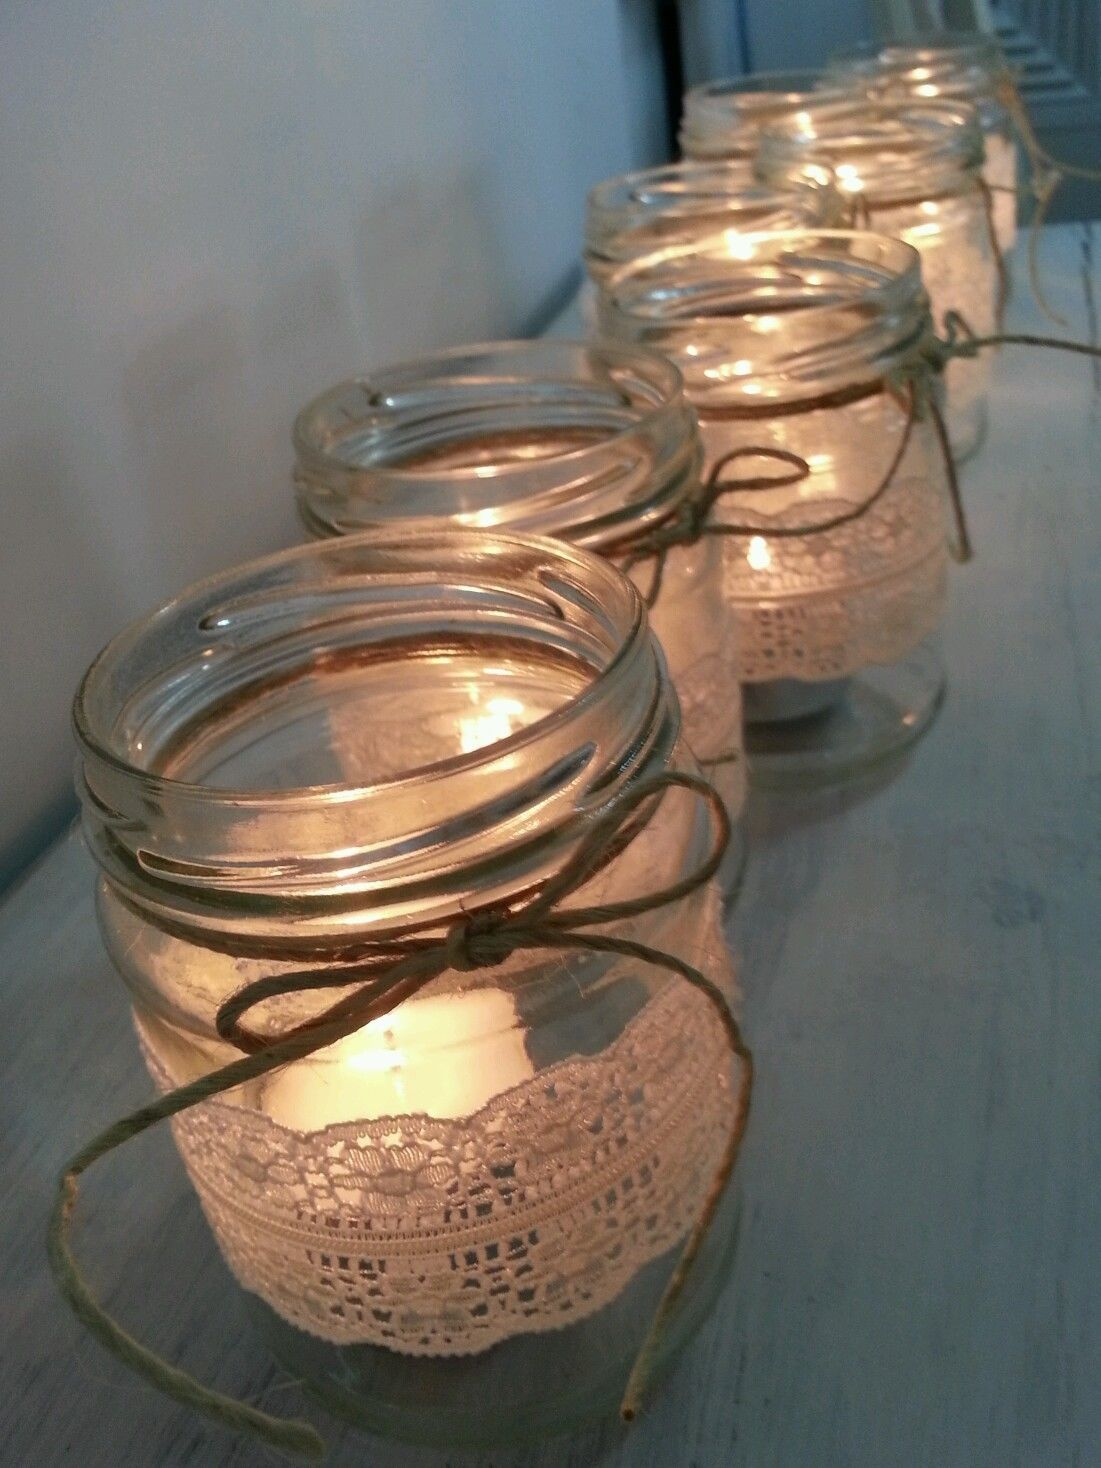 10 rustic lace glass jar candle holder wedding christmas decoration 10 rustic lace glass jar candle holder wedding christmas decoration ebay junglespirit Image collections